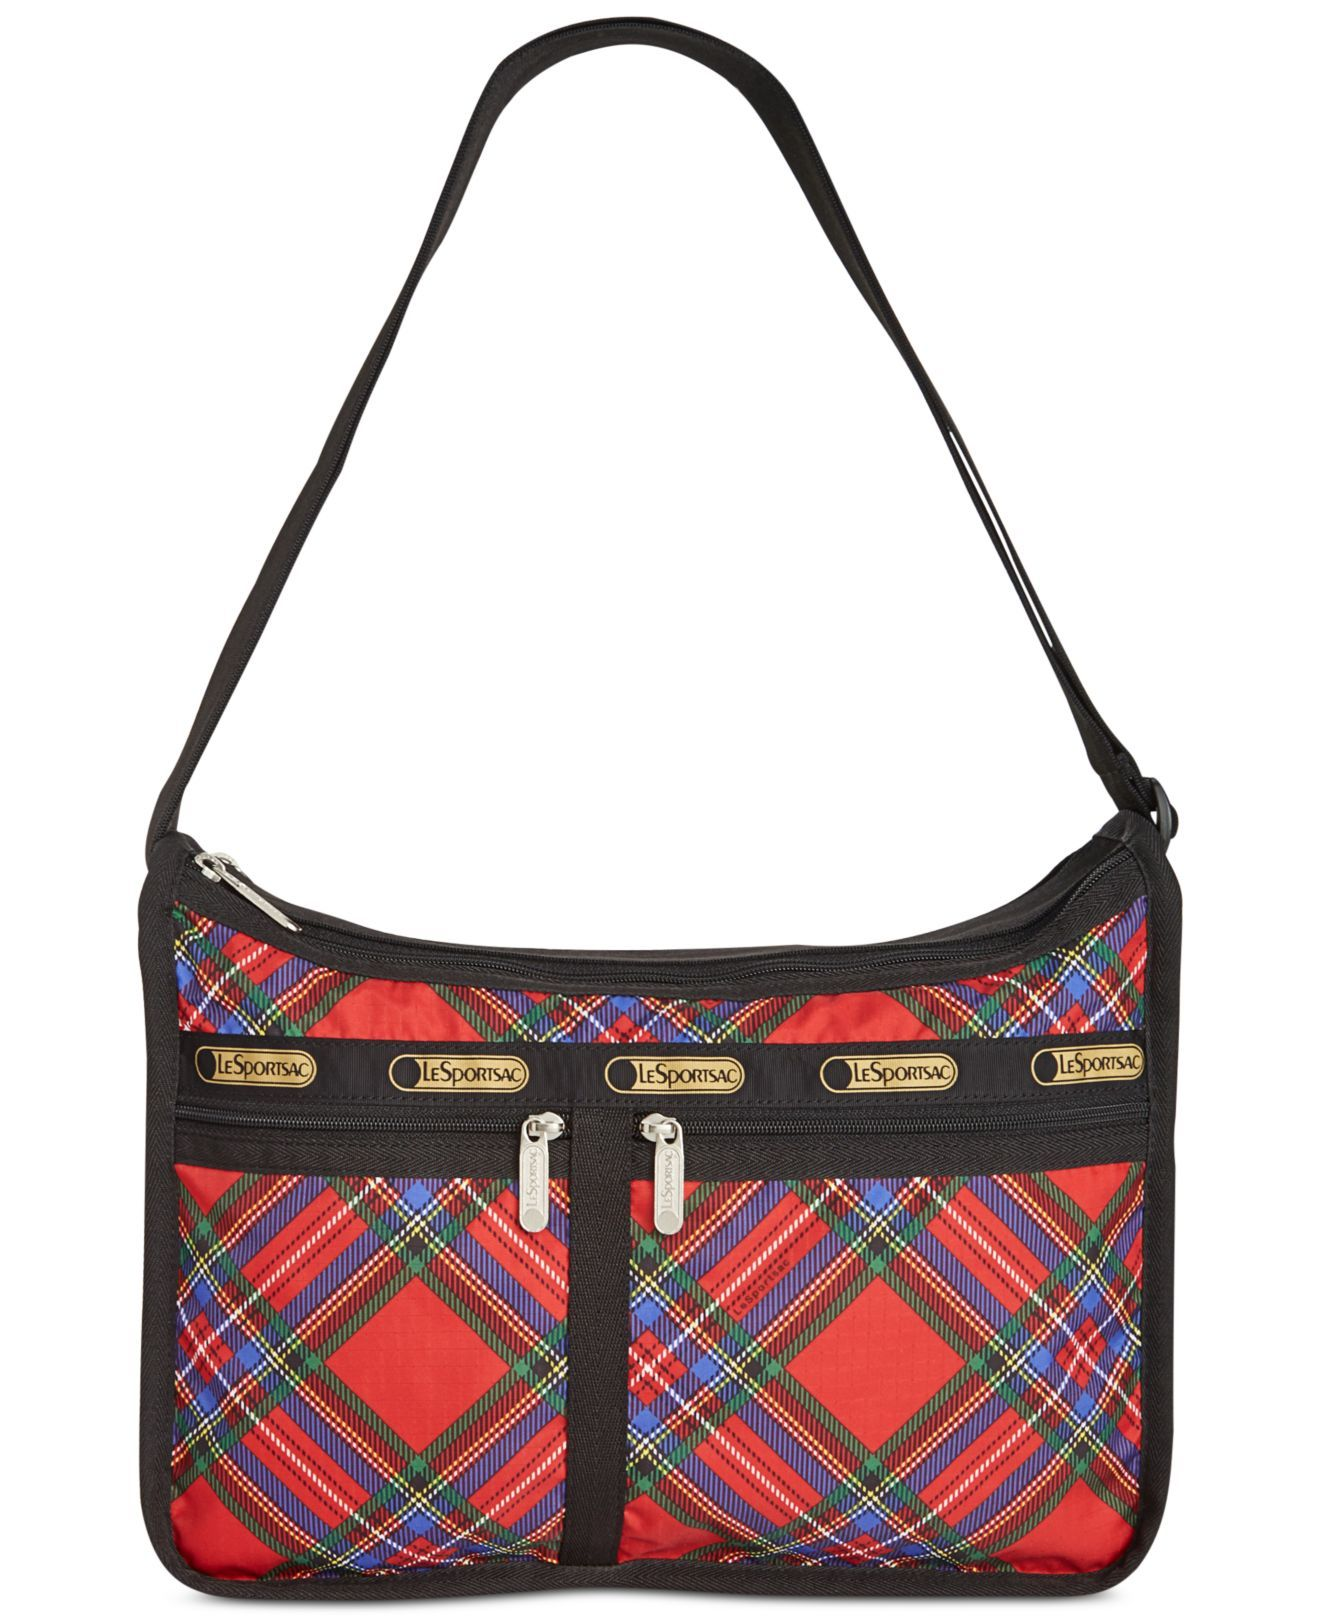 Lesportsac Deluxe Everyday Bag Cozy Plaid Red